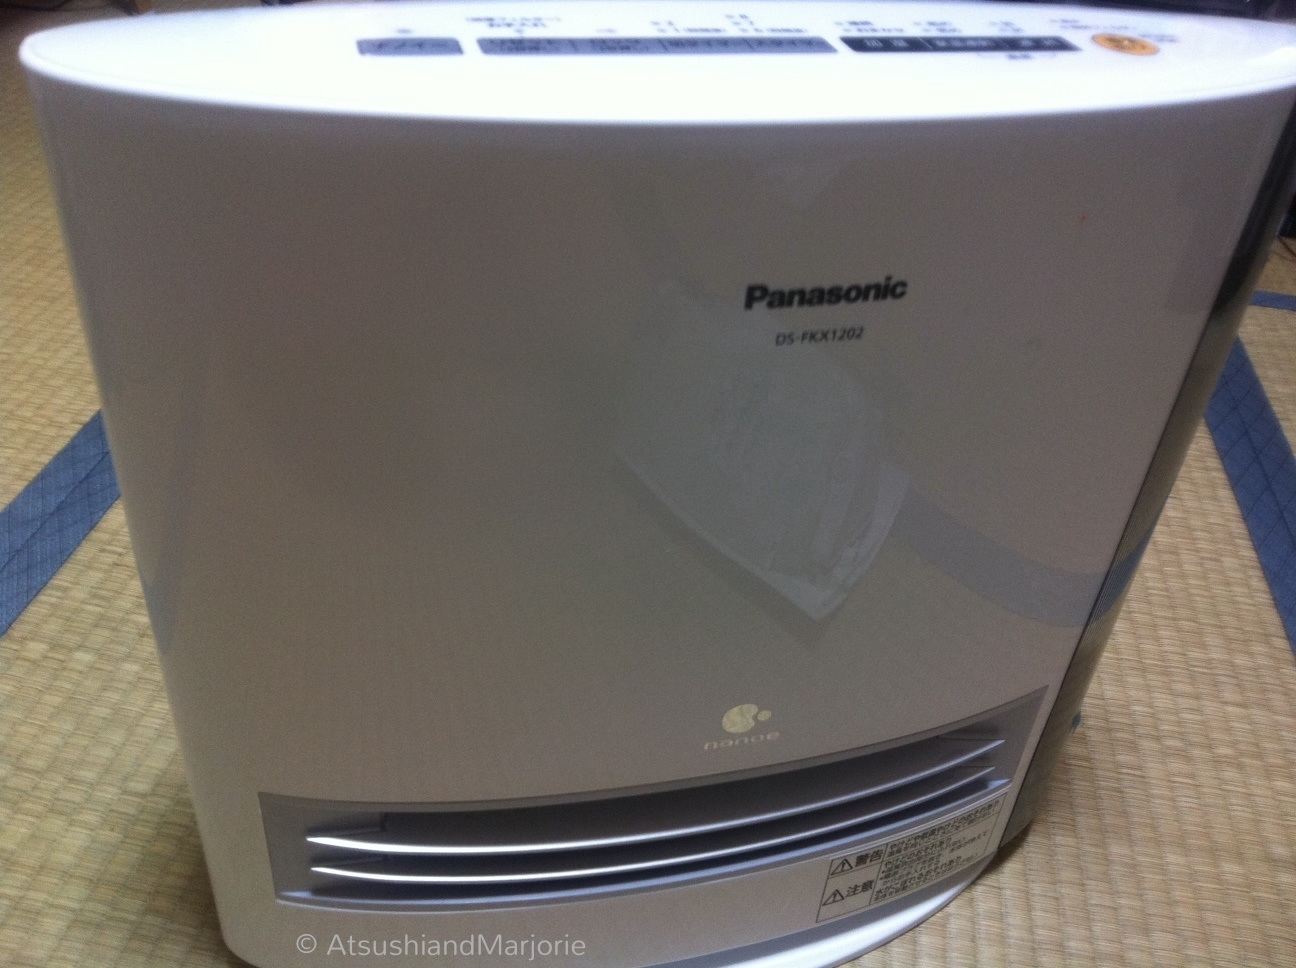 Panasonic Nanoe humidifier heater On Chocolate Hill #367595